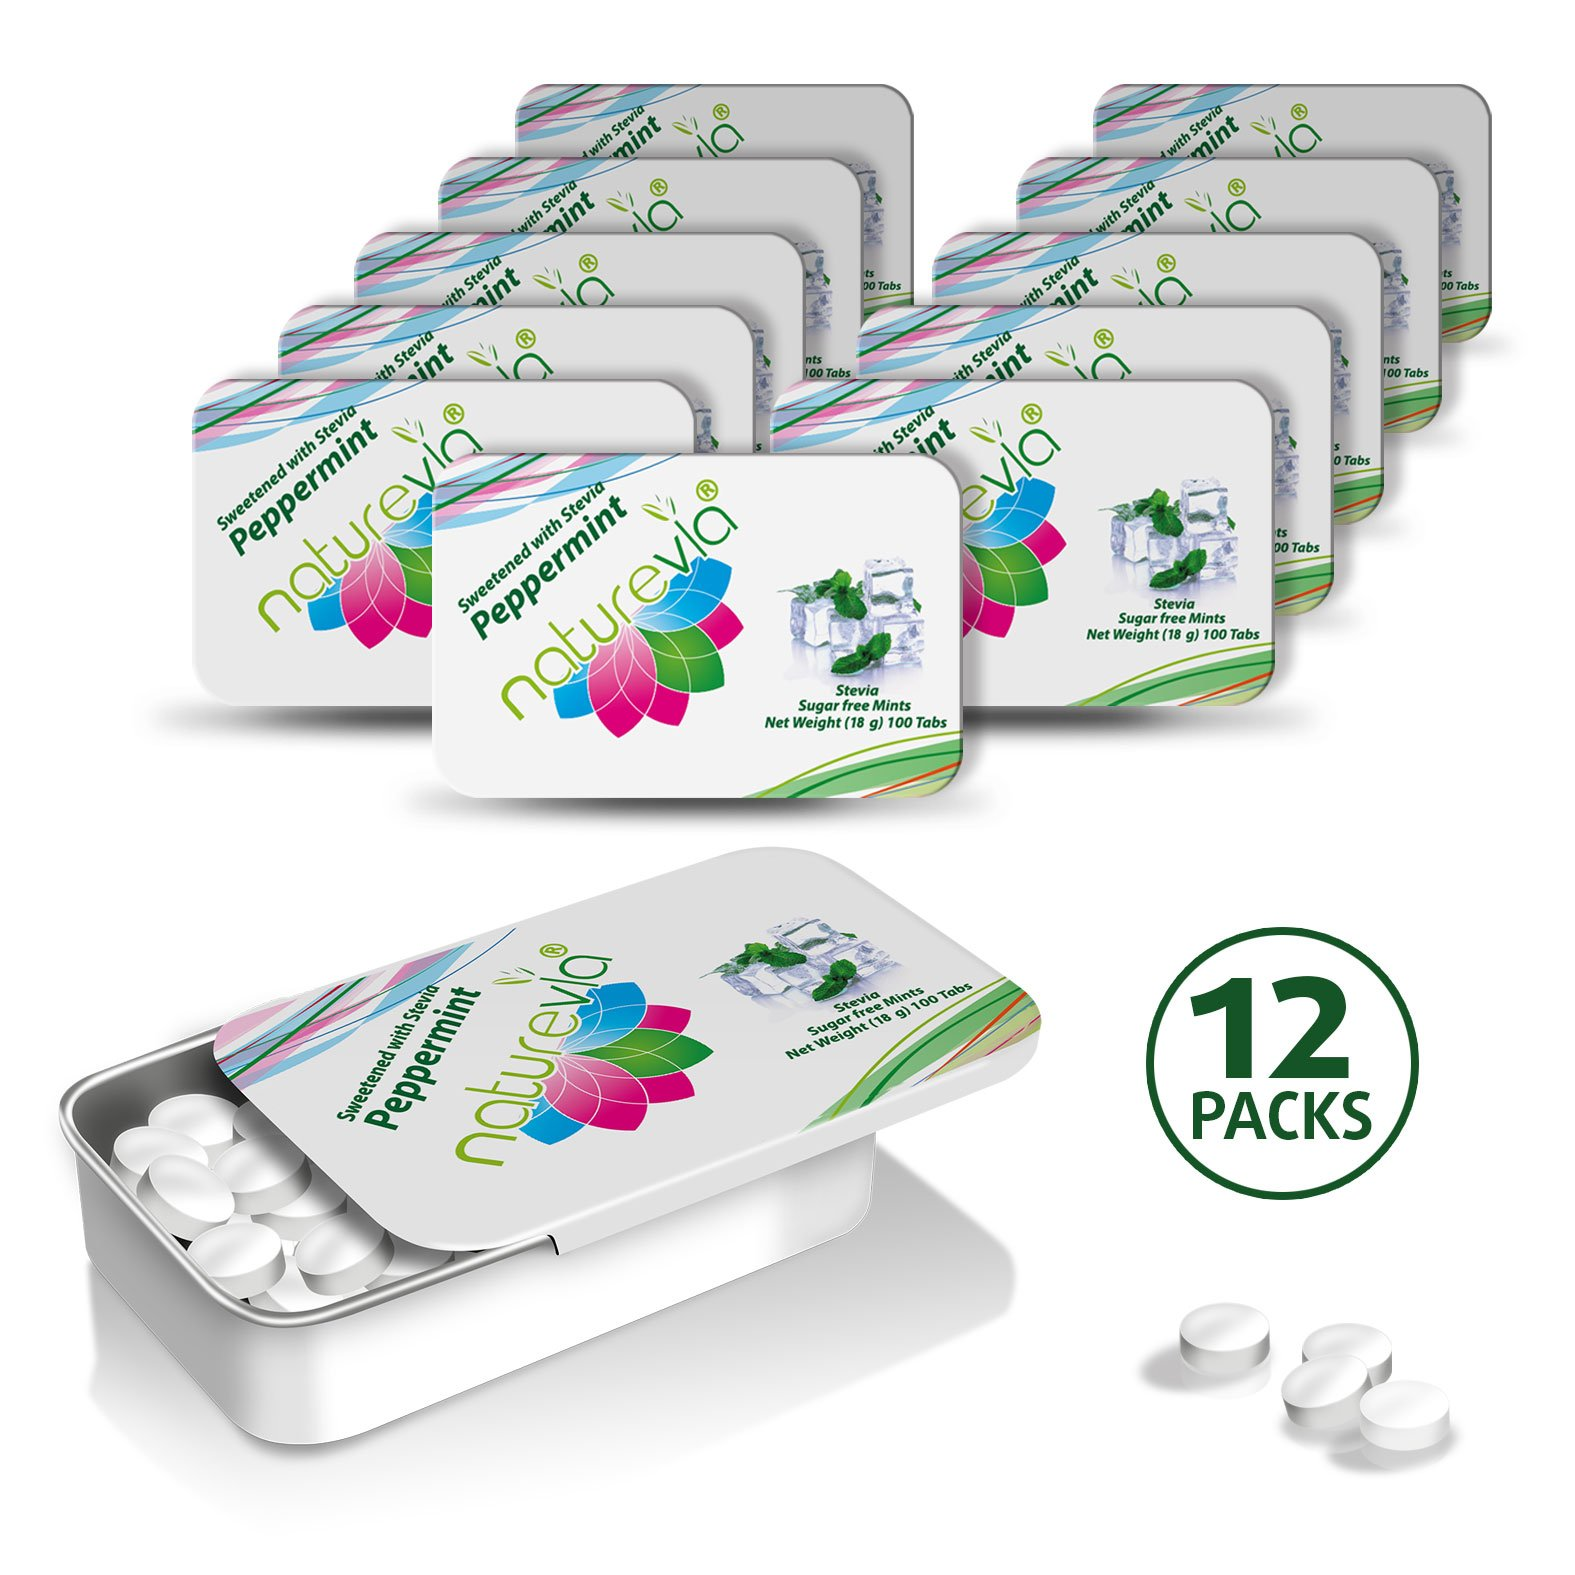 Sugar-Free Mints - Peppermint Flavor(12x100 tabs, 18 g): Mints Naturally Sweetened with Stevia, Free of: Sugar, Carbs, Calories, Glycemic Index, Aspartame & Artificial Sweeteners; Dentist Recommended